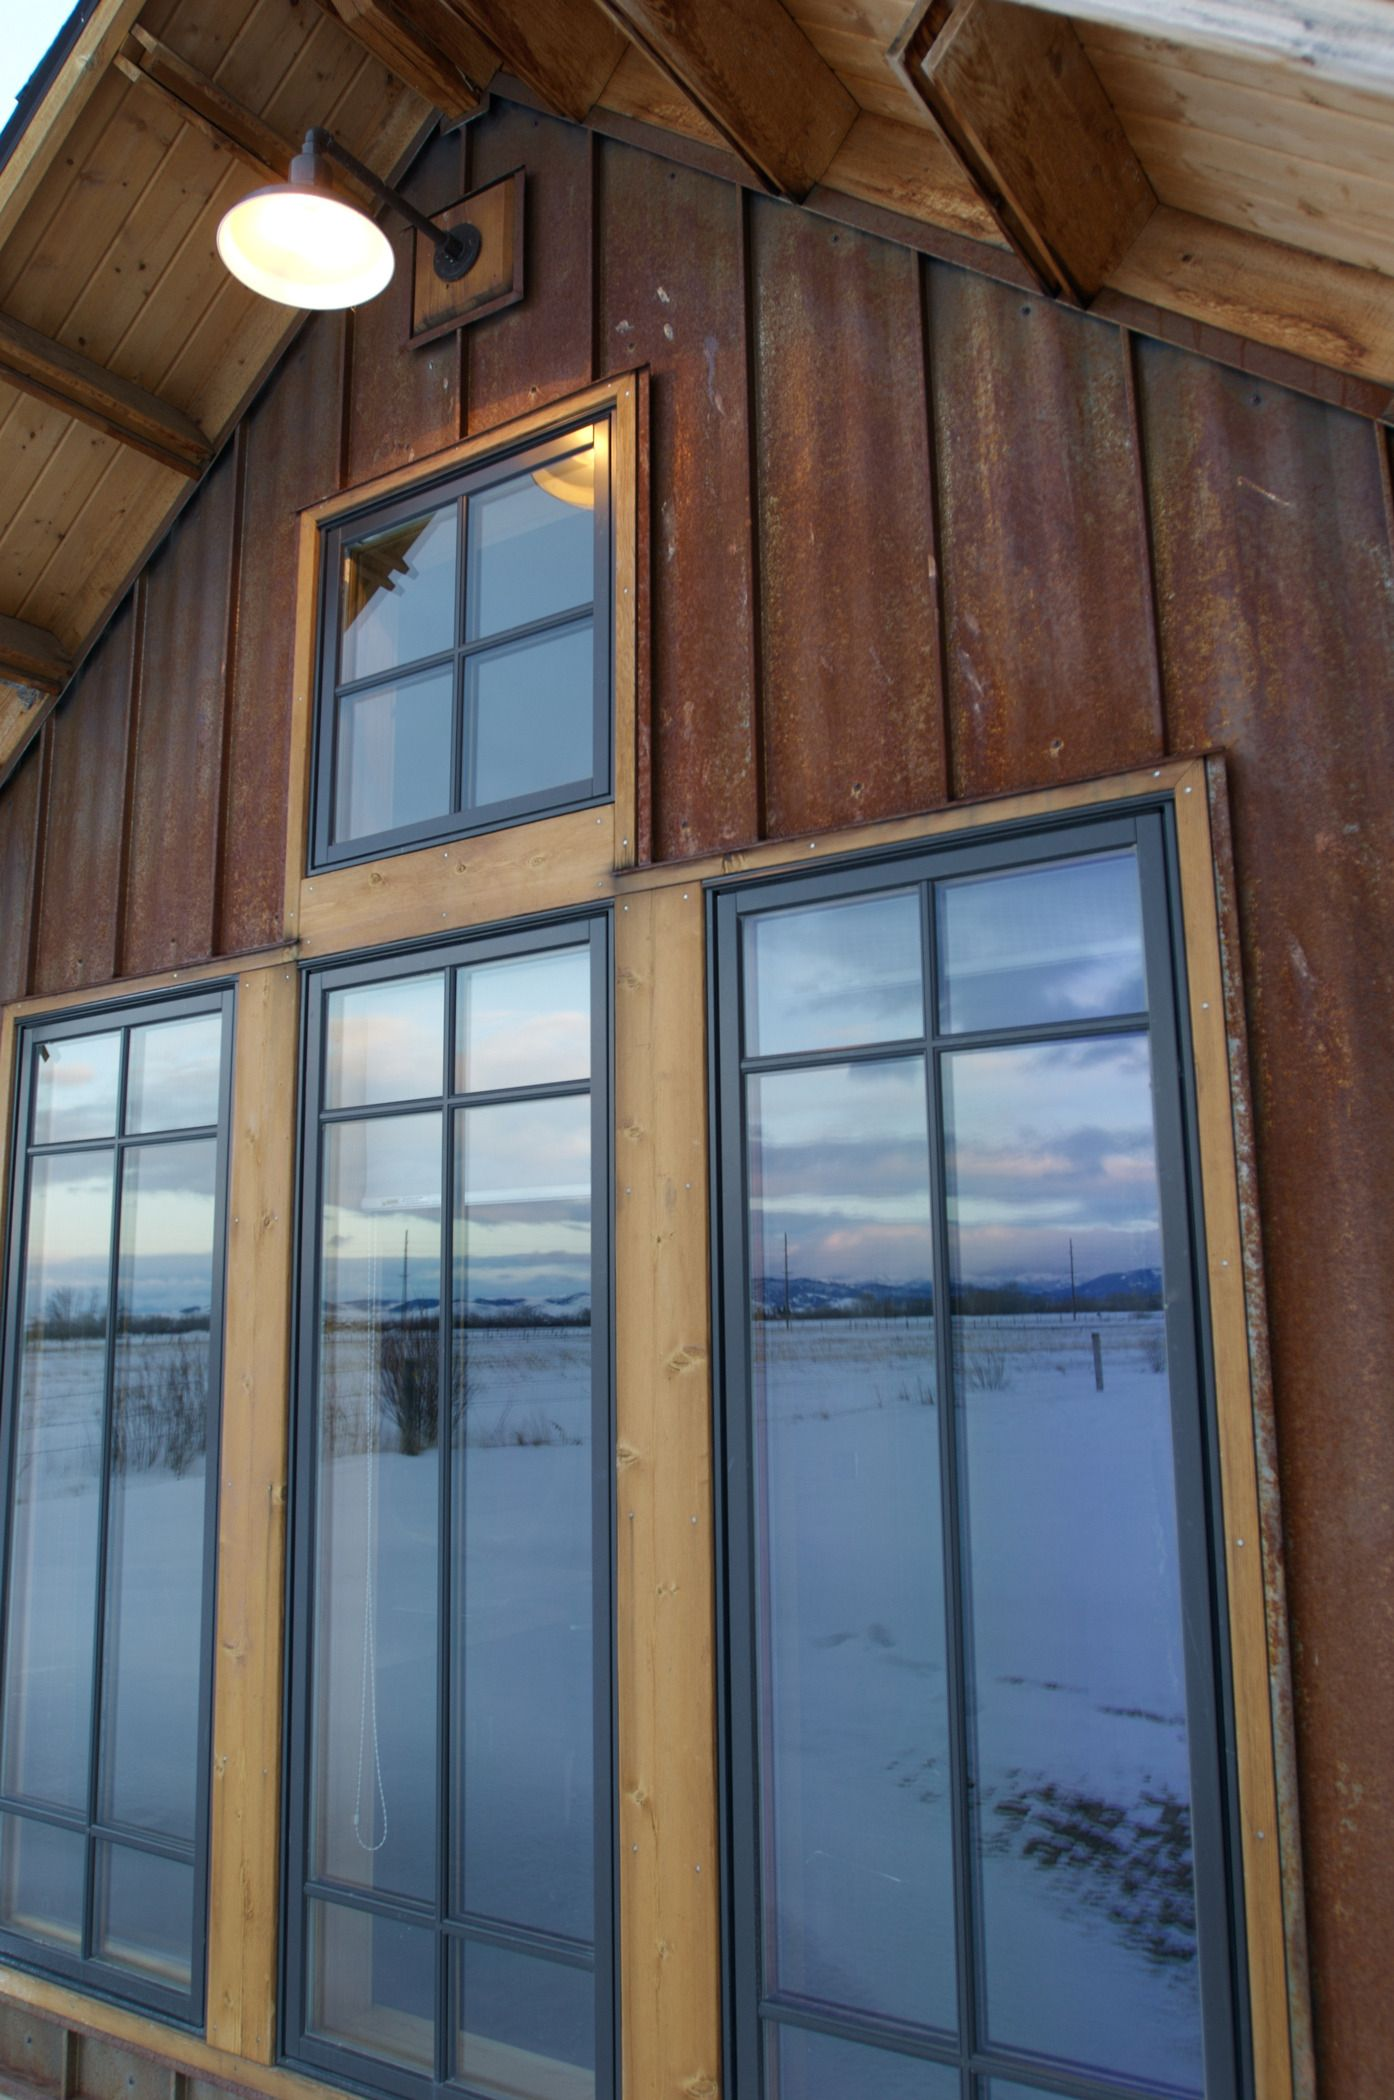 Rustic Siding Done In Steel Will Outlast Other Board And Batten Style Siding Products This Is Truten Mechanical Lock Siding By Steel Siding Rustic Exterior Metal Buildings